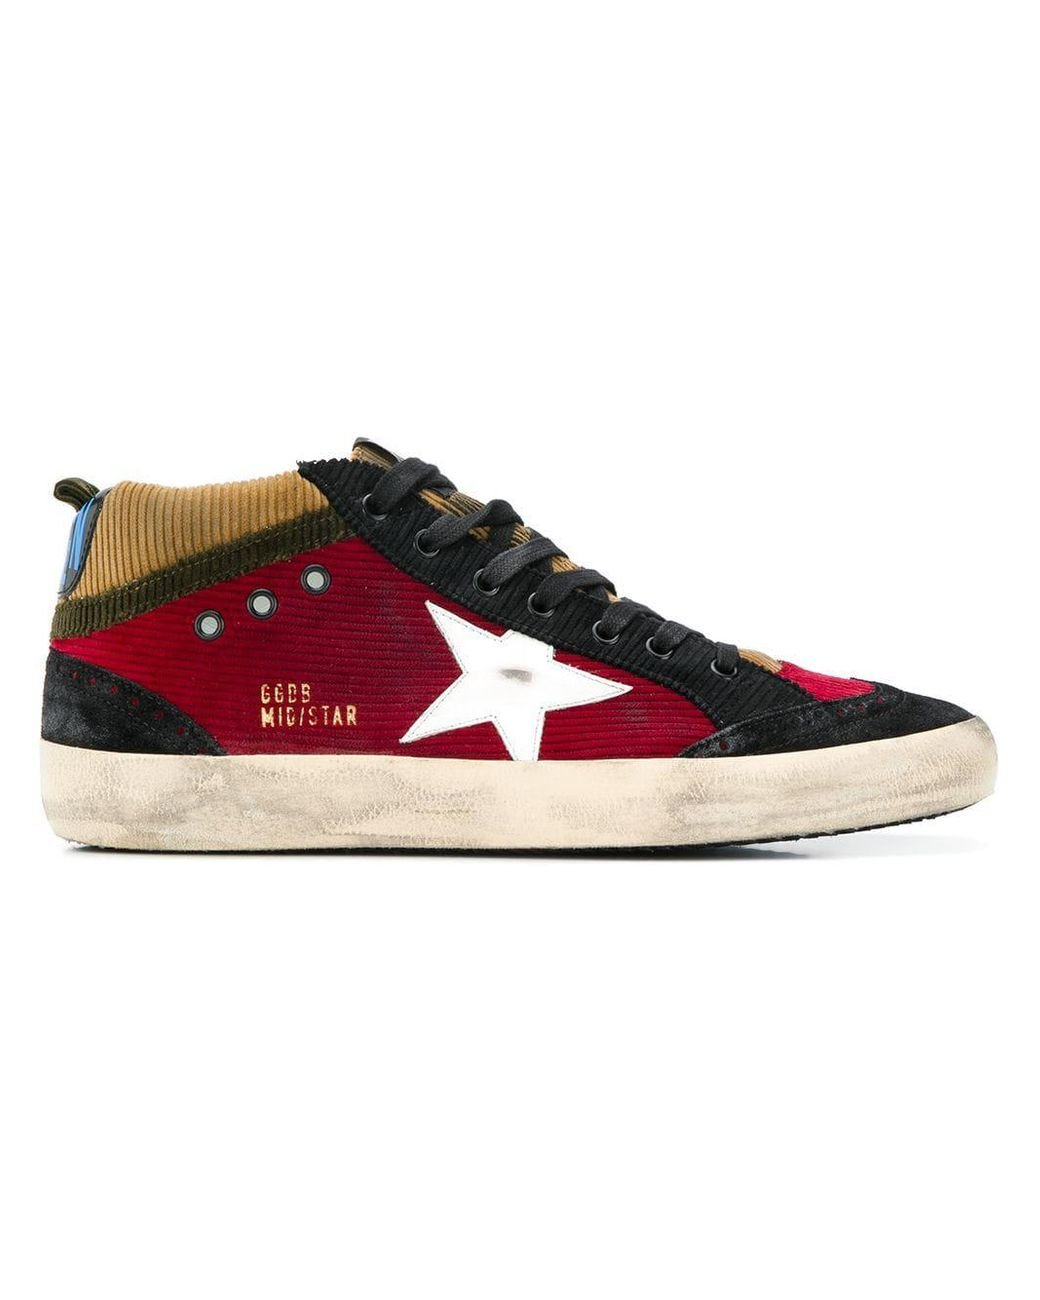 4b7188138a153 ... golden goose deluxe brand men s red mid star corduroy trainers ...